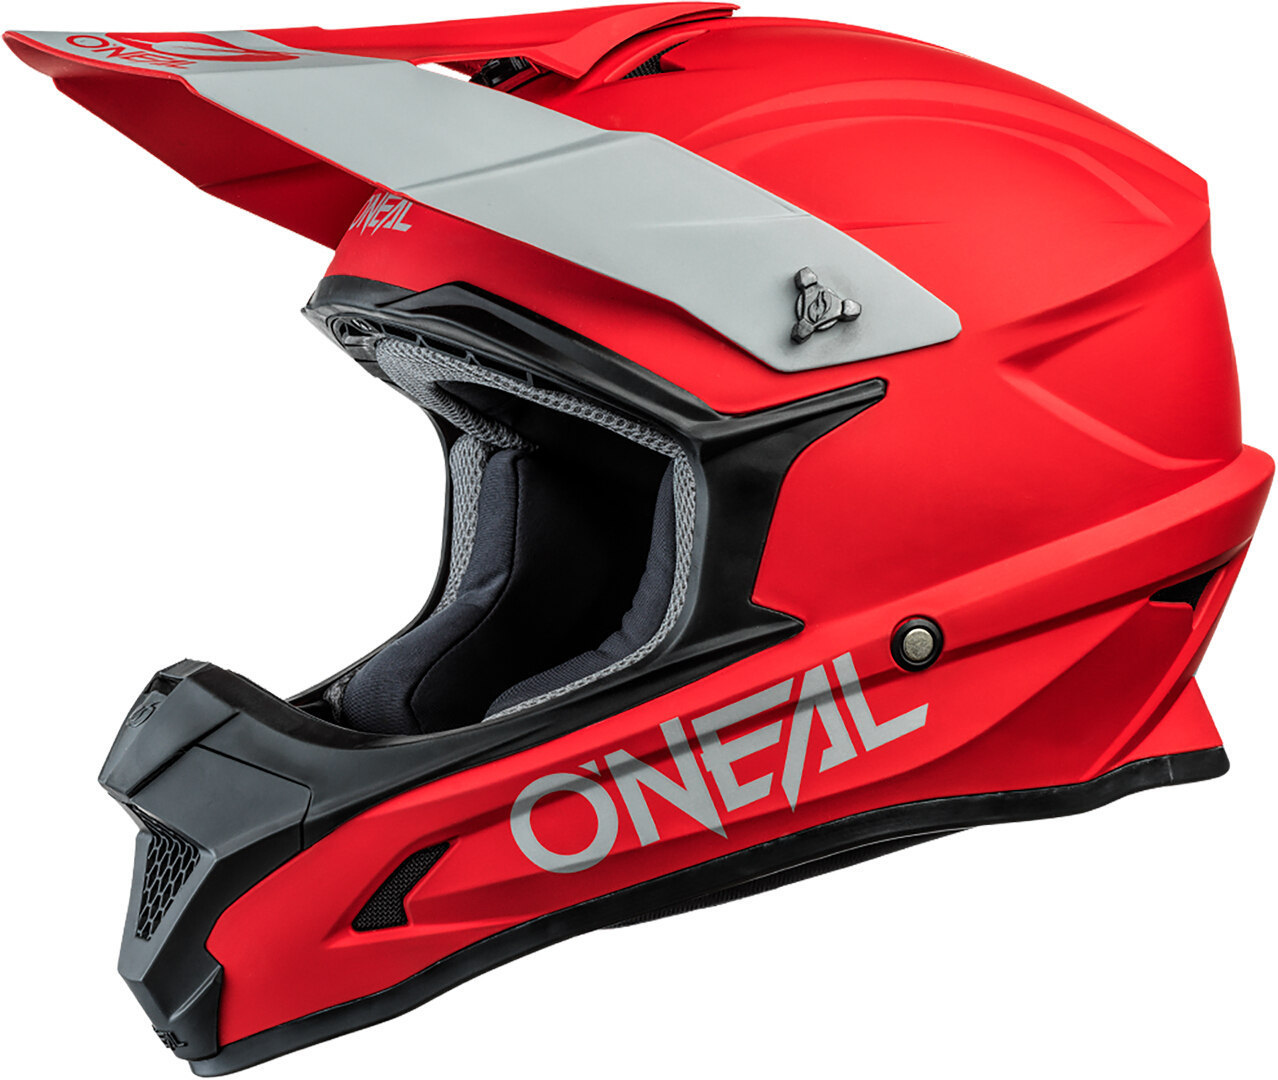 Oneal 1Series Solid Motocross Helm, rot, Größe XS, rot, Größe XS